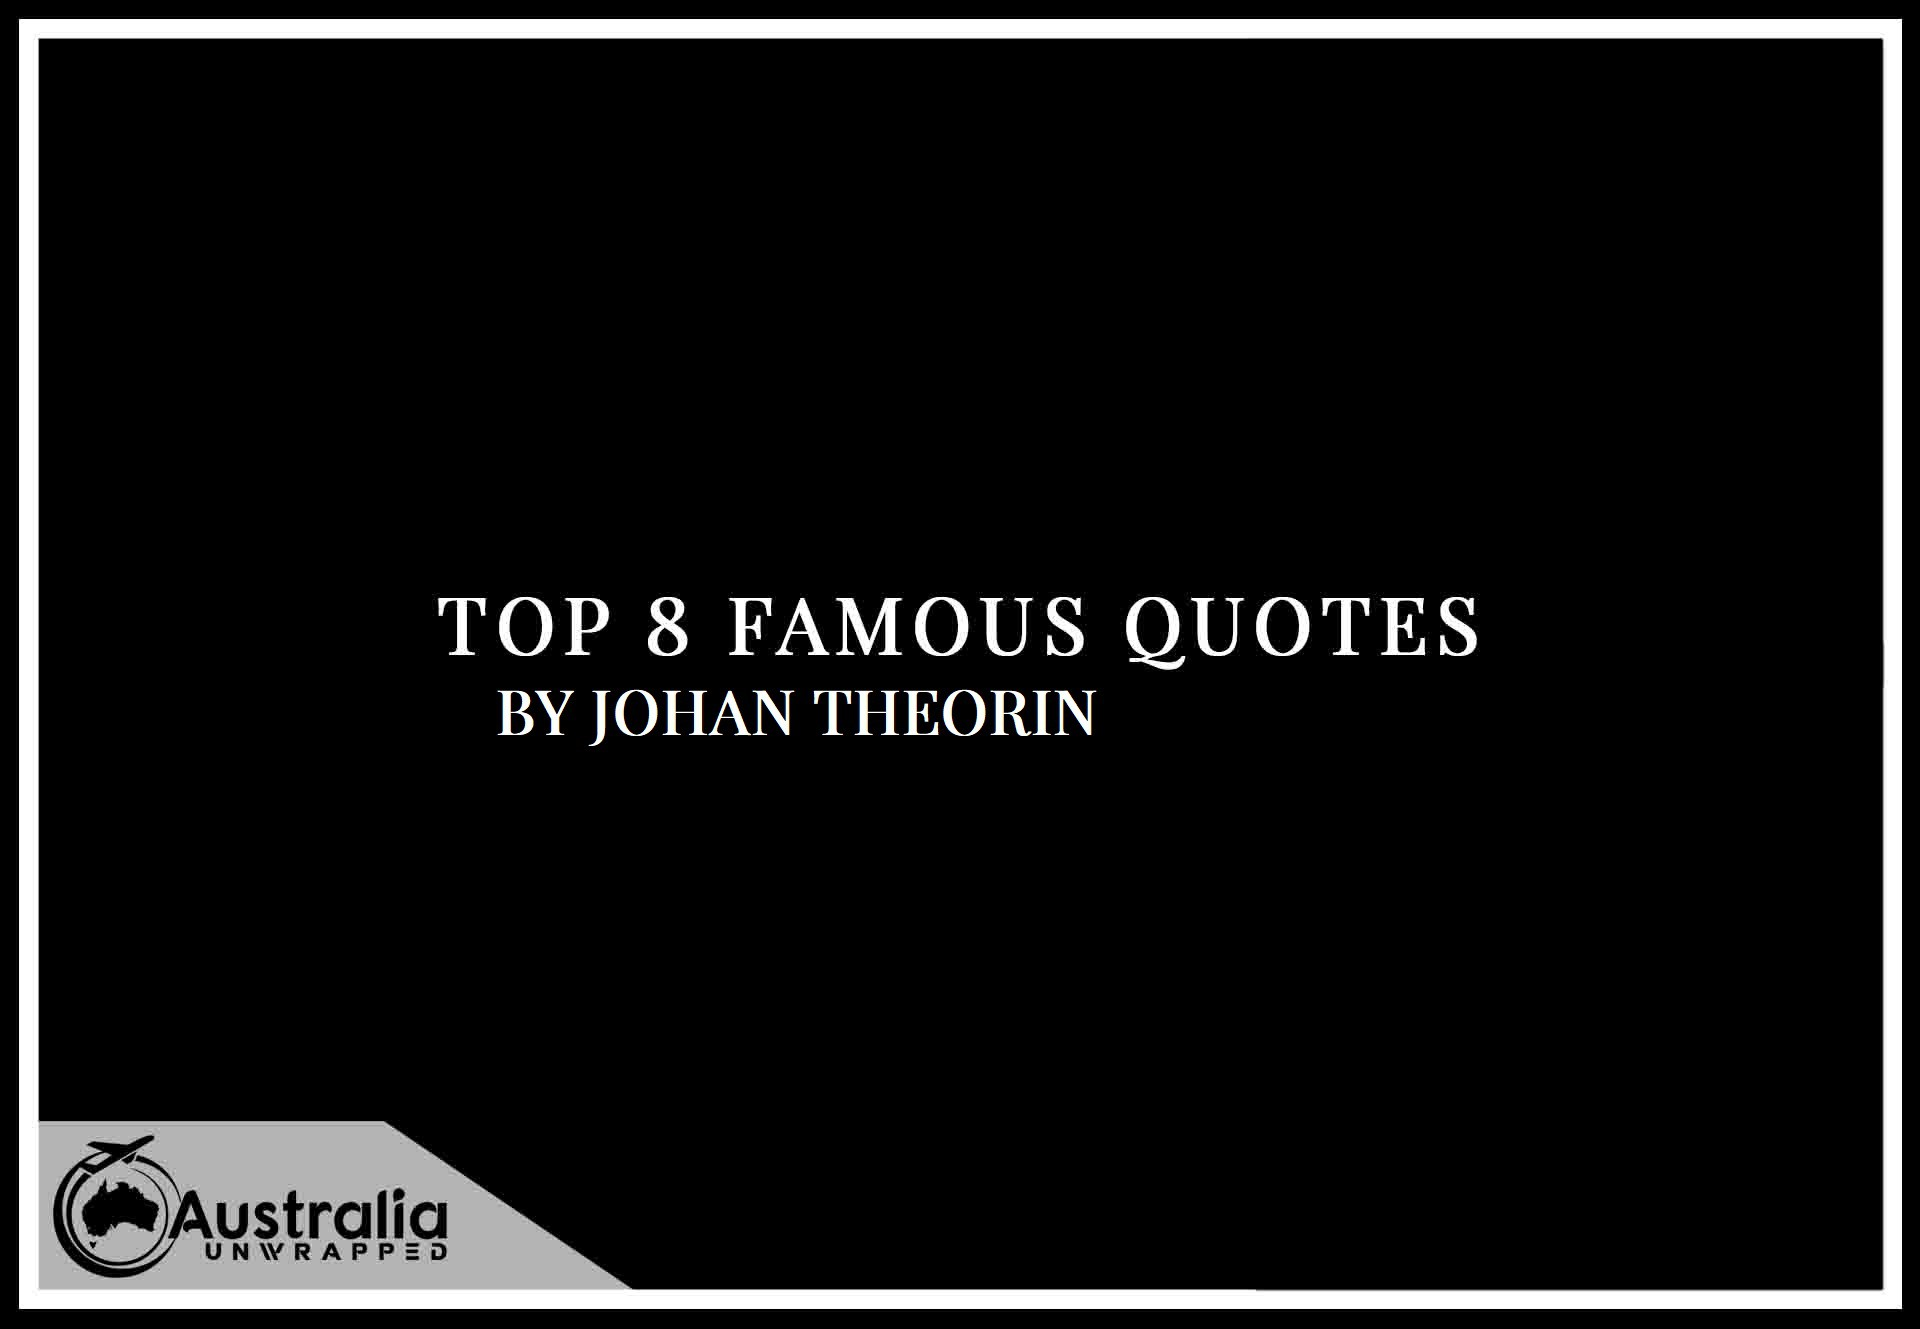 Top 8 Famous Quotes by Author Johan Theorin